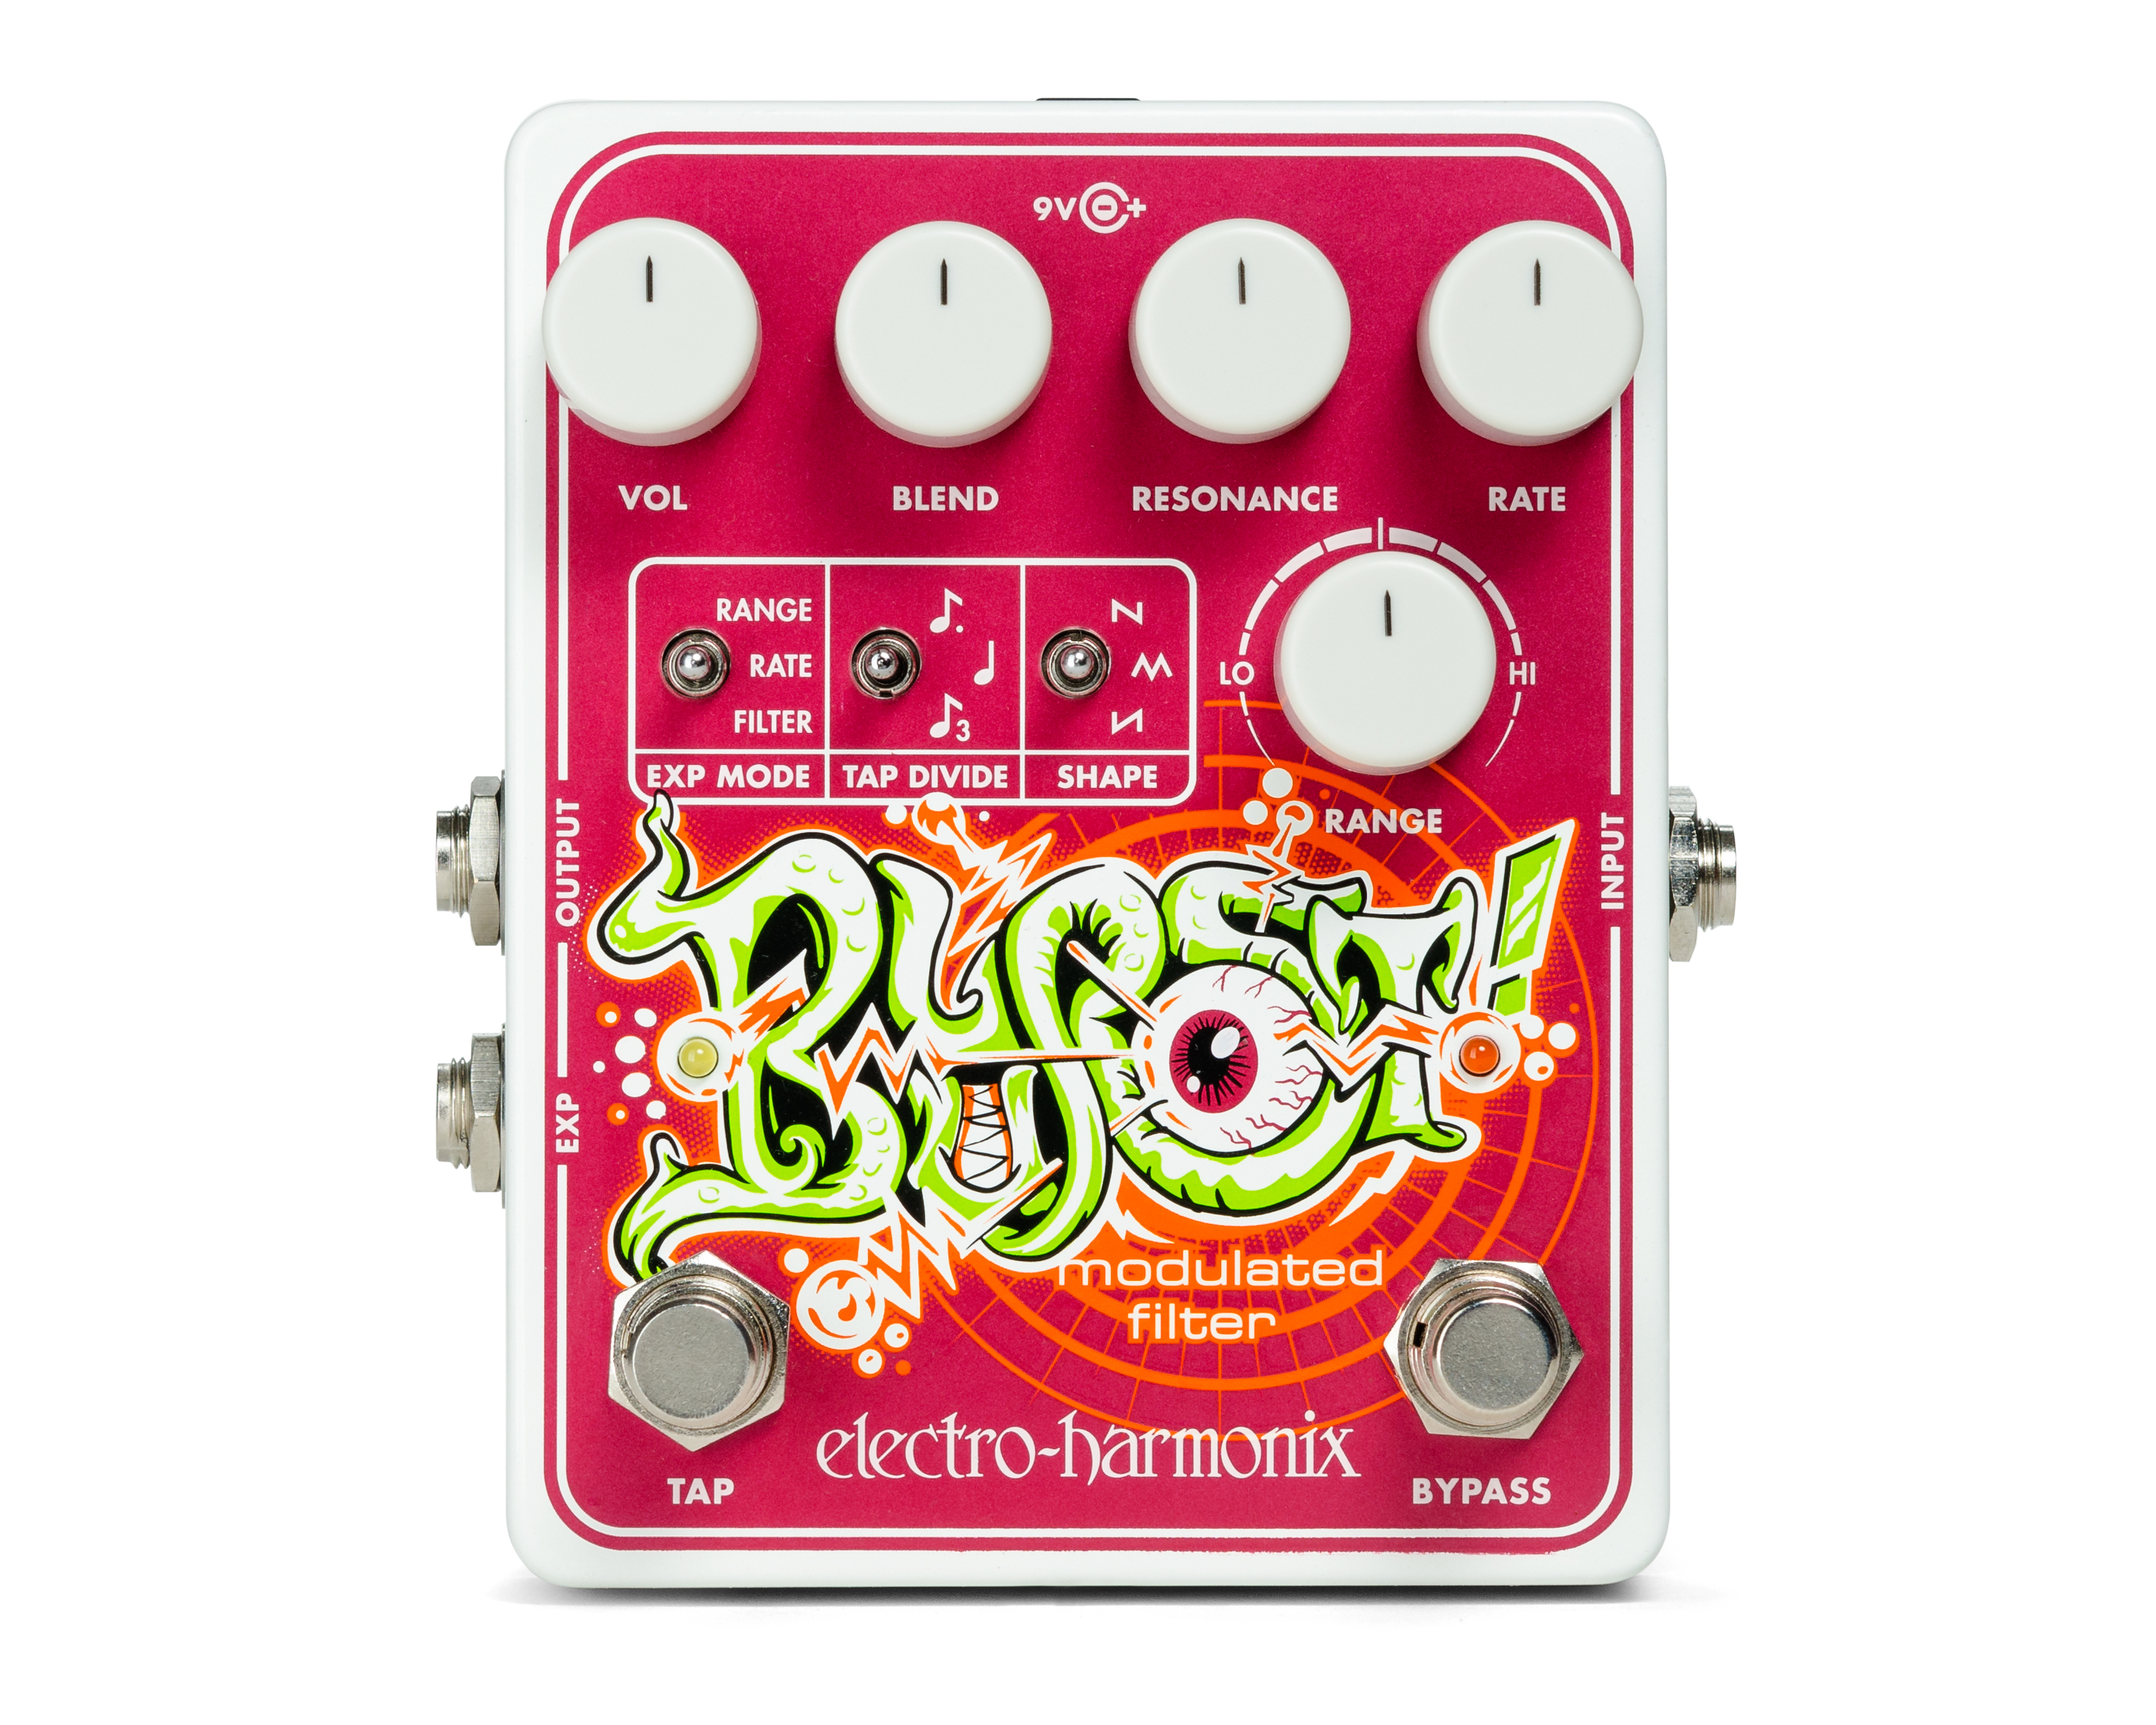 Electro-Harmonix Blurst Modulated Filter Guitar Bass Effects Pedal by Electro Harmonix